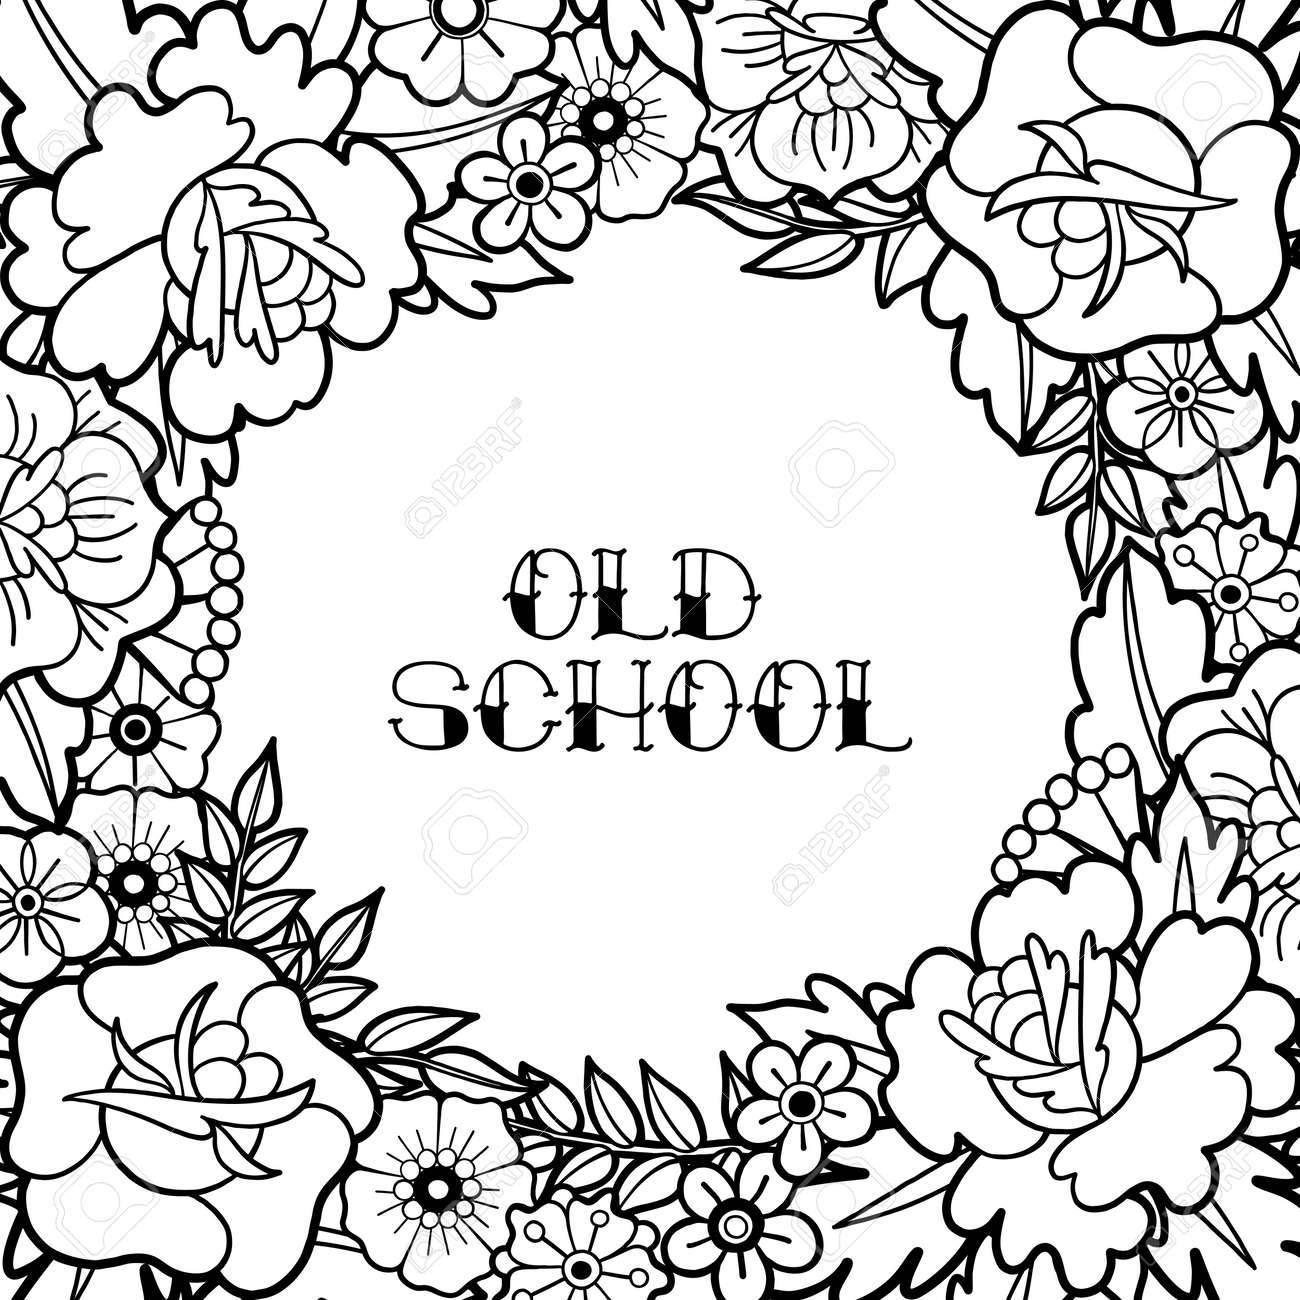 Vector Vintage Design Drawn In Old School Tattoo Style Coloring Book